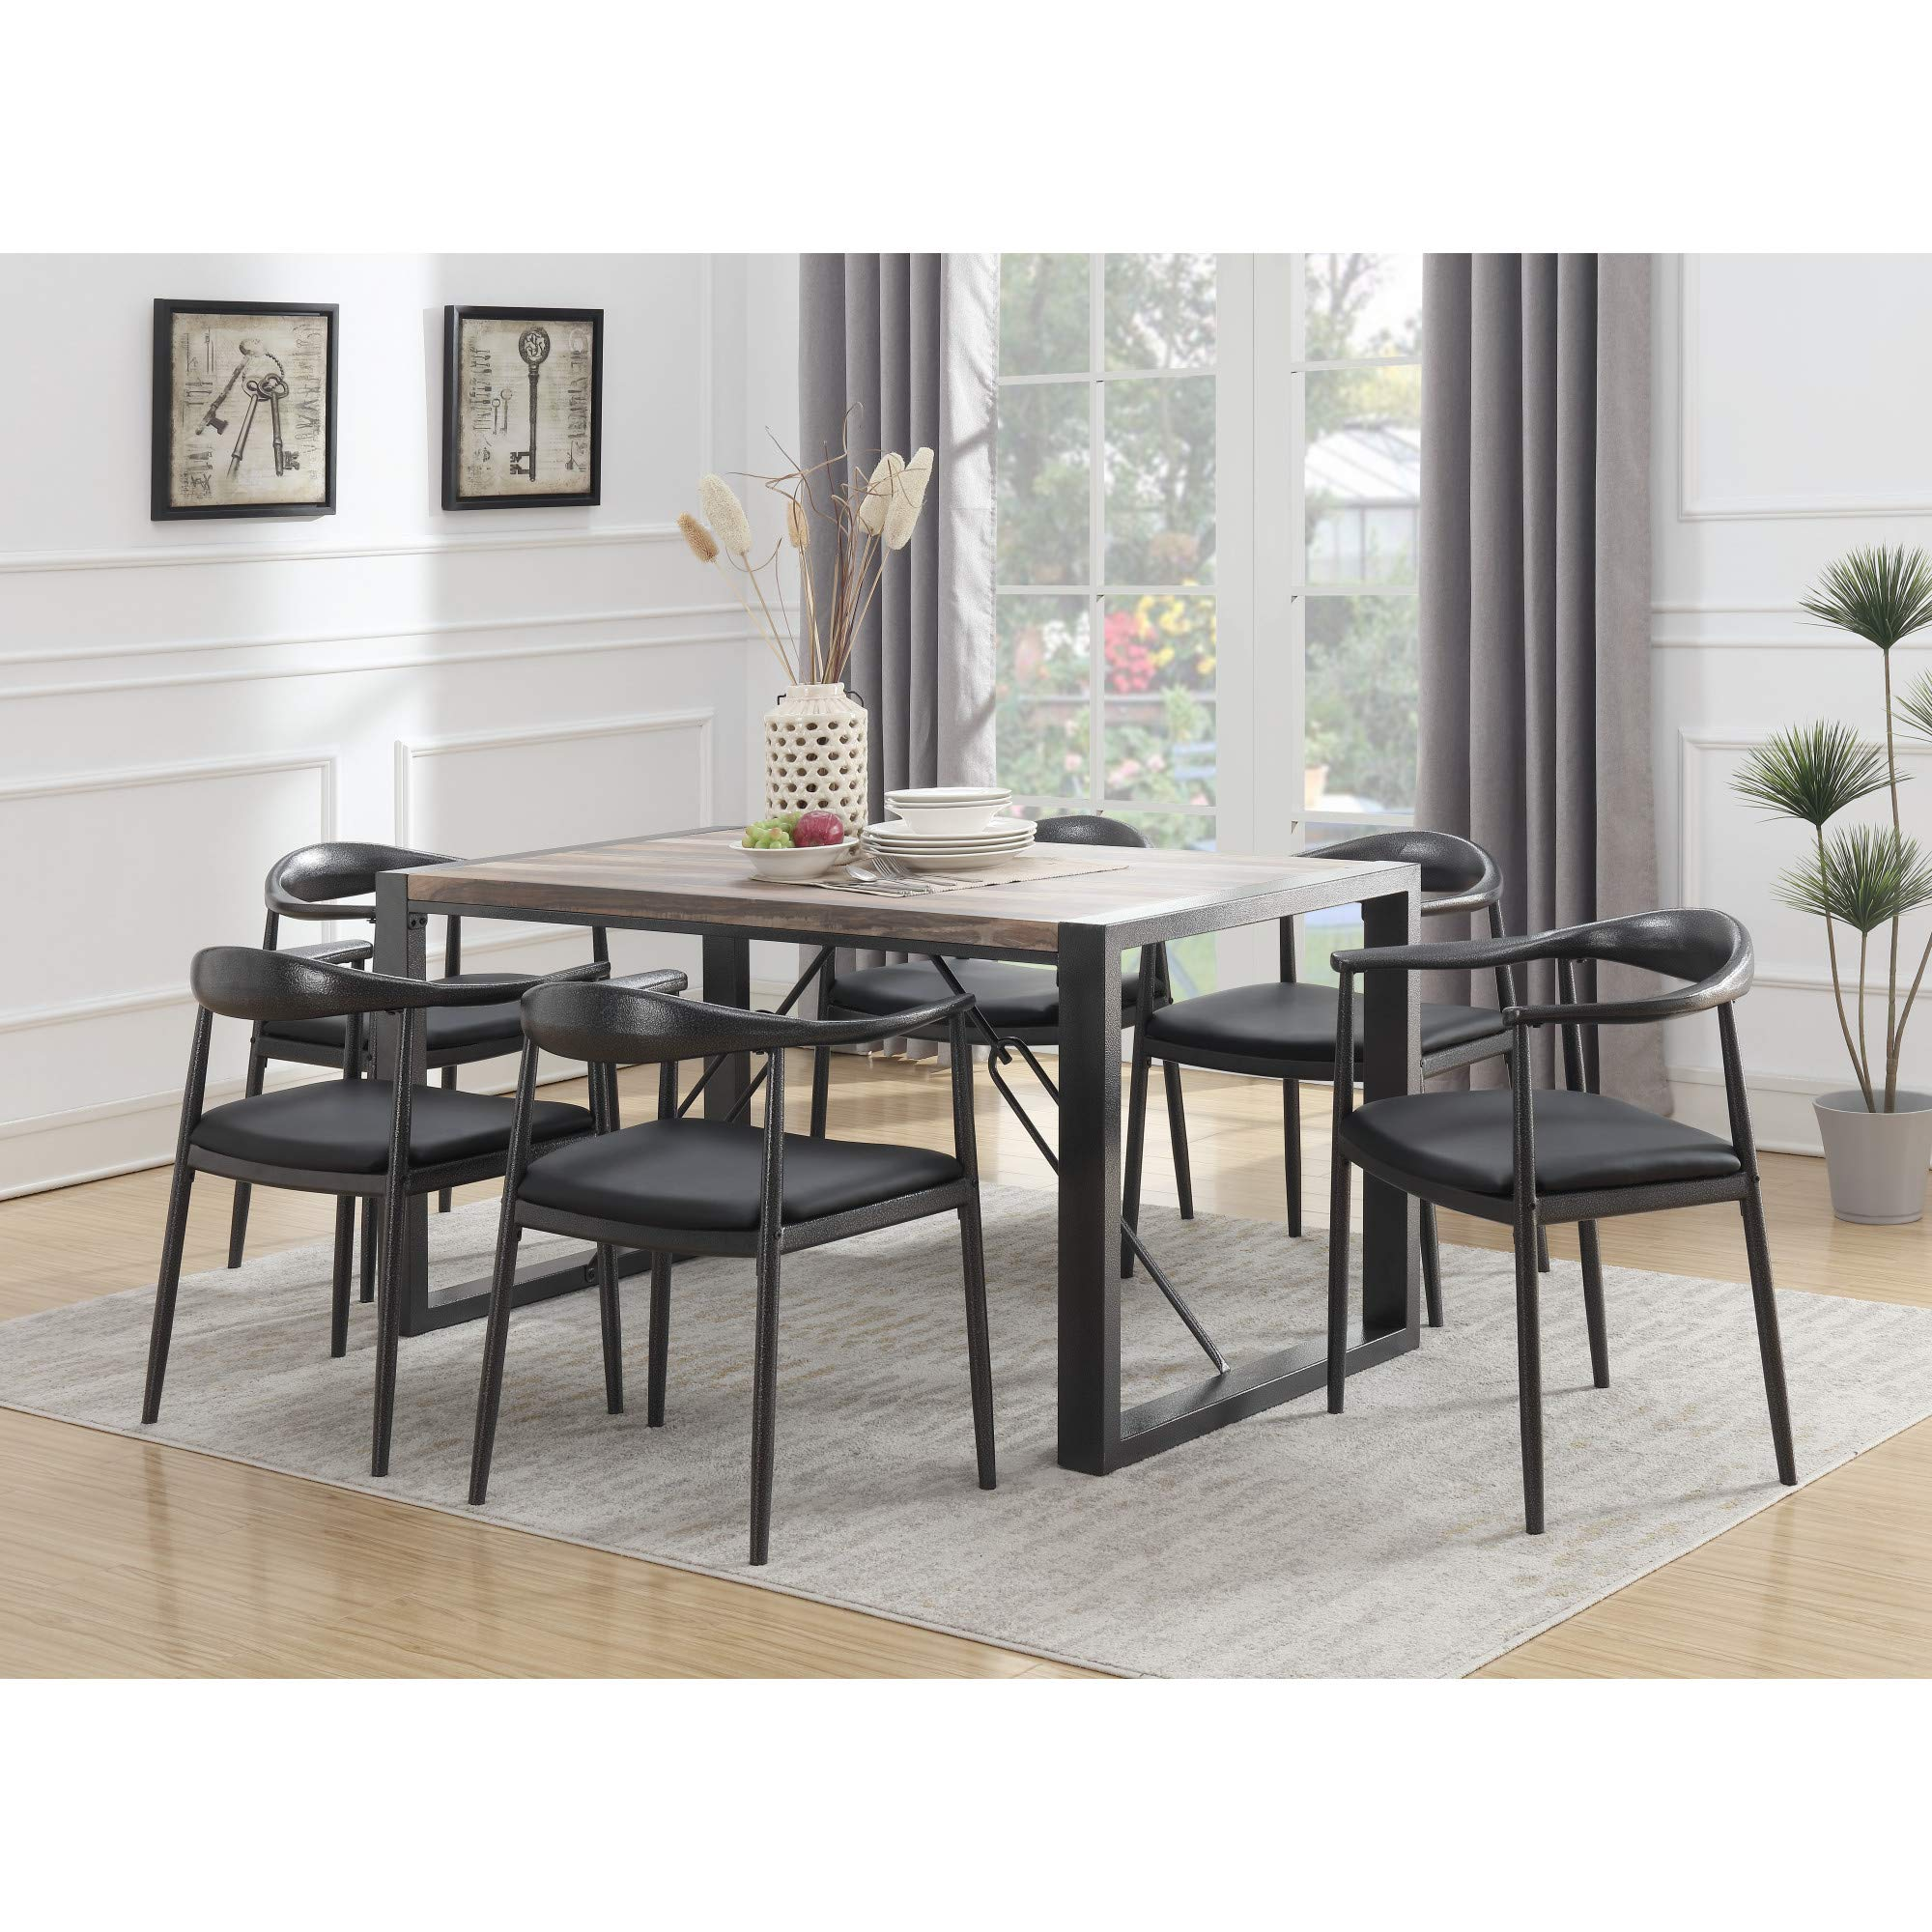 Taras 59'' Dining Table in Jet Black with Wood Veneer Top And Metal Base, by Artum Hill by Artum Hill (Image #3)